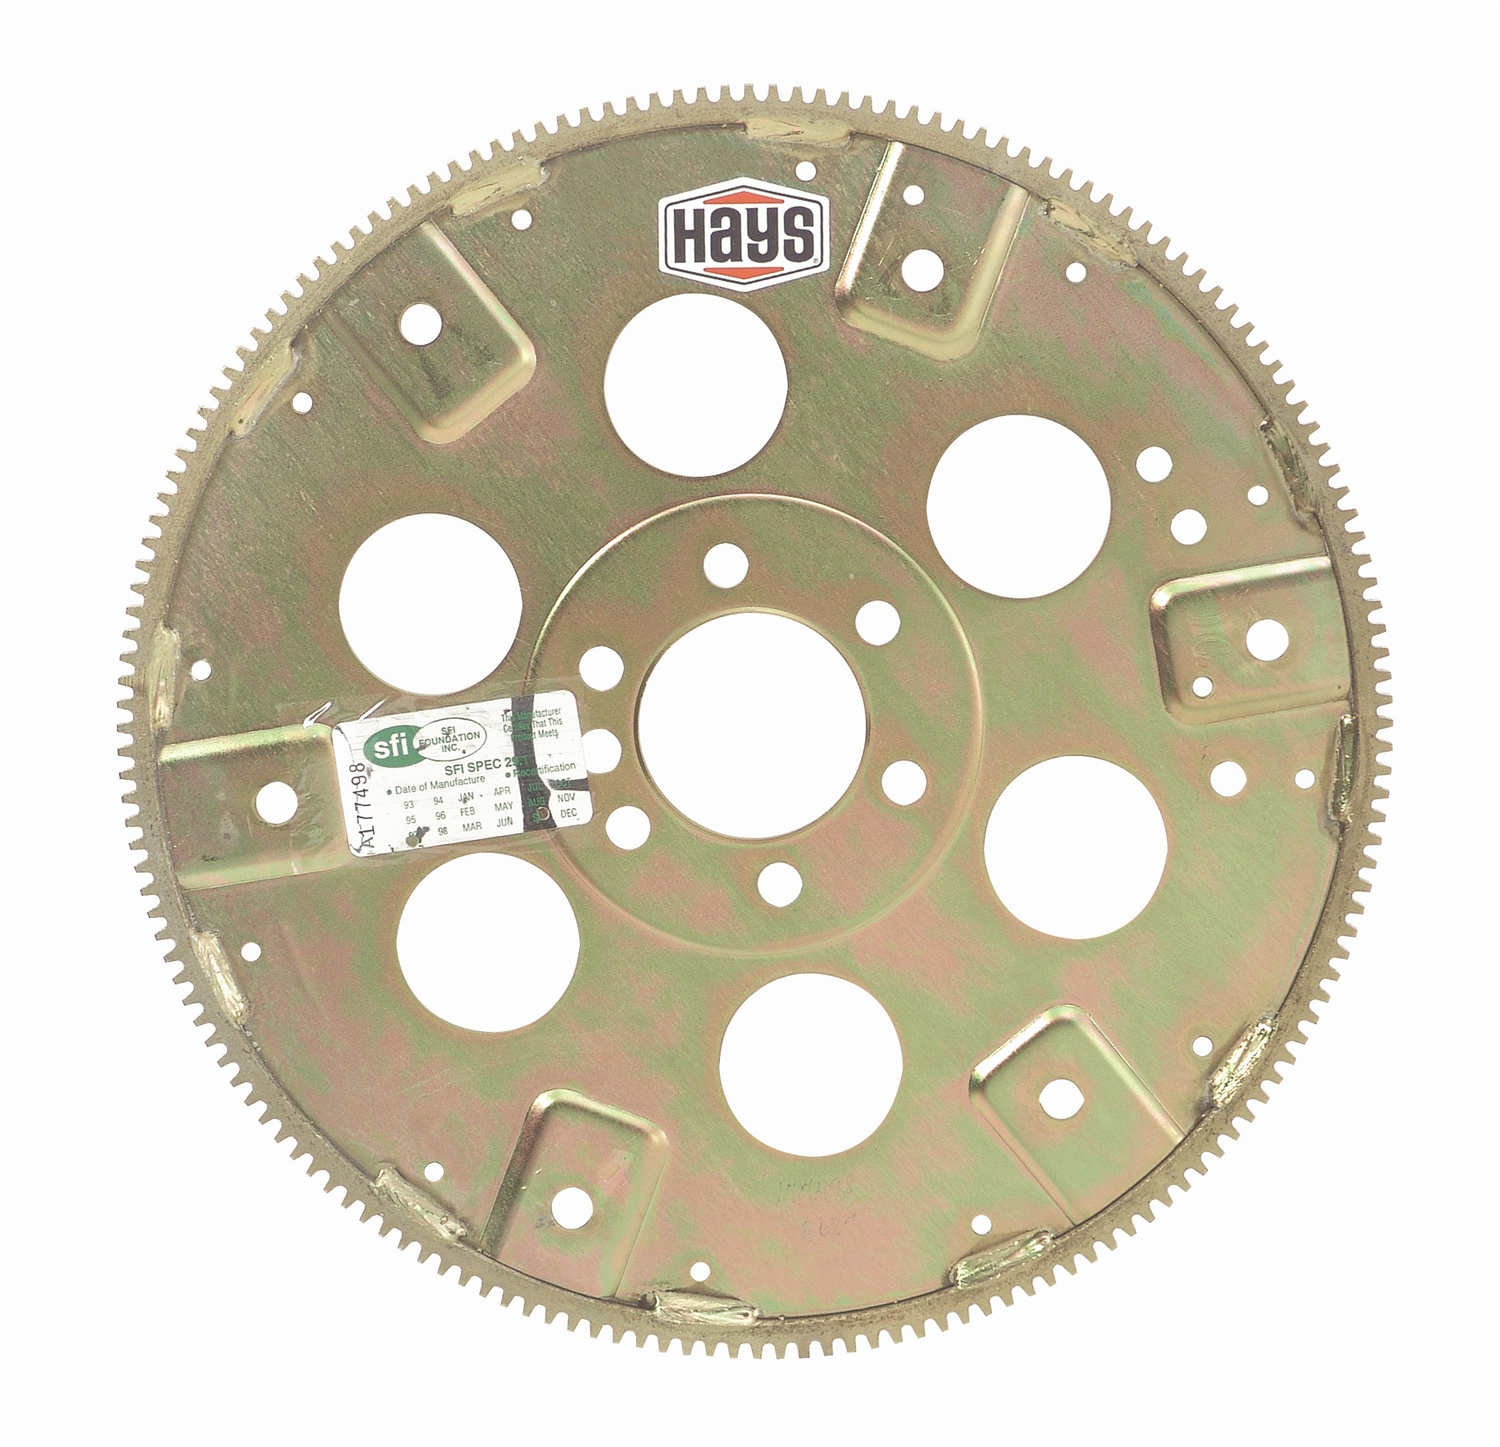 10-020 Hays Auto Trans Flexplate For Use With Chevy Big Block Engines